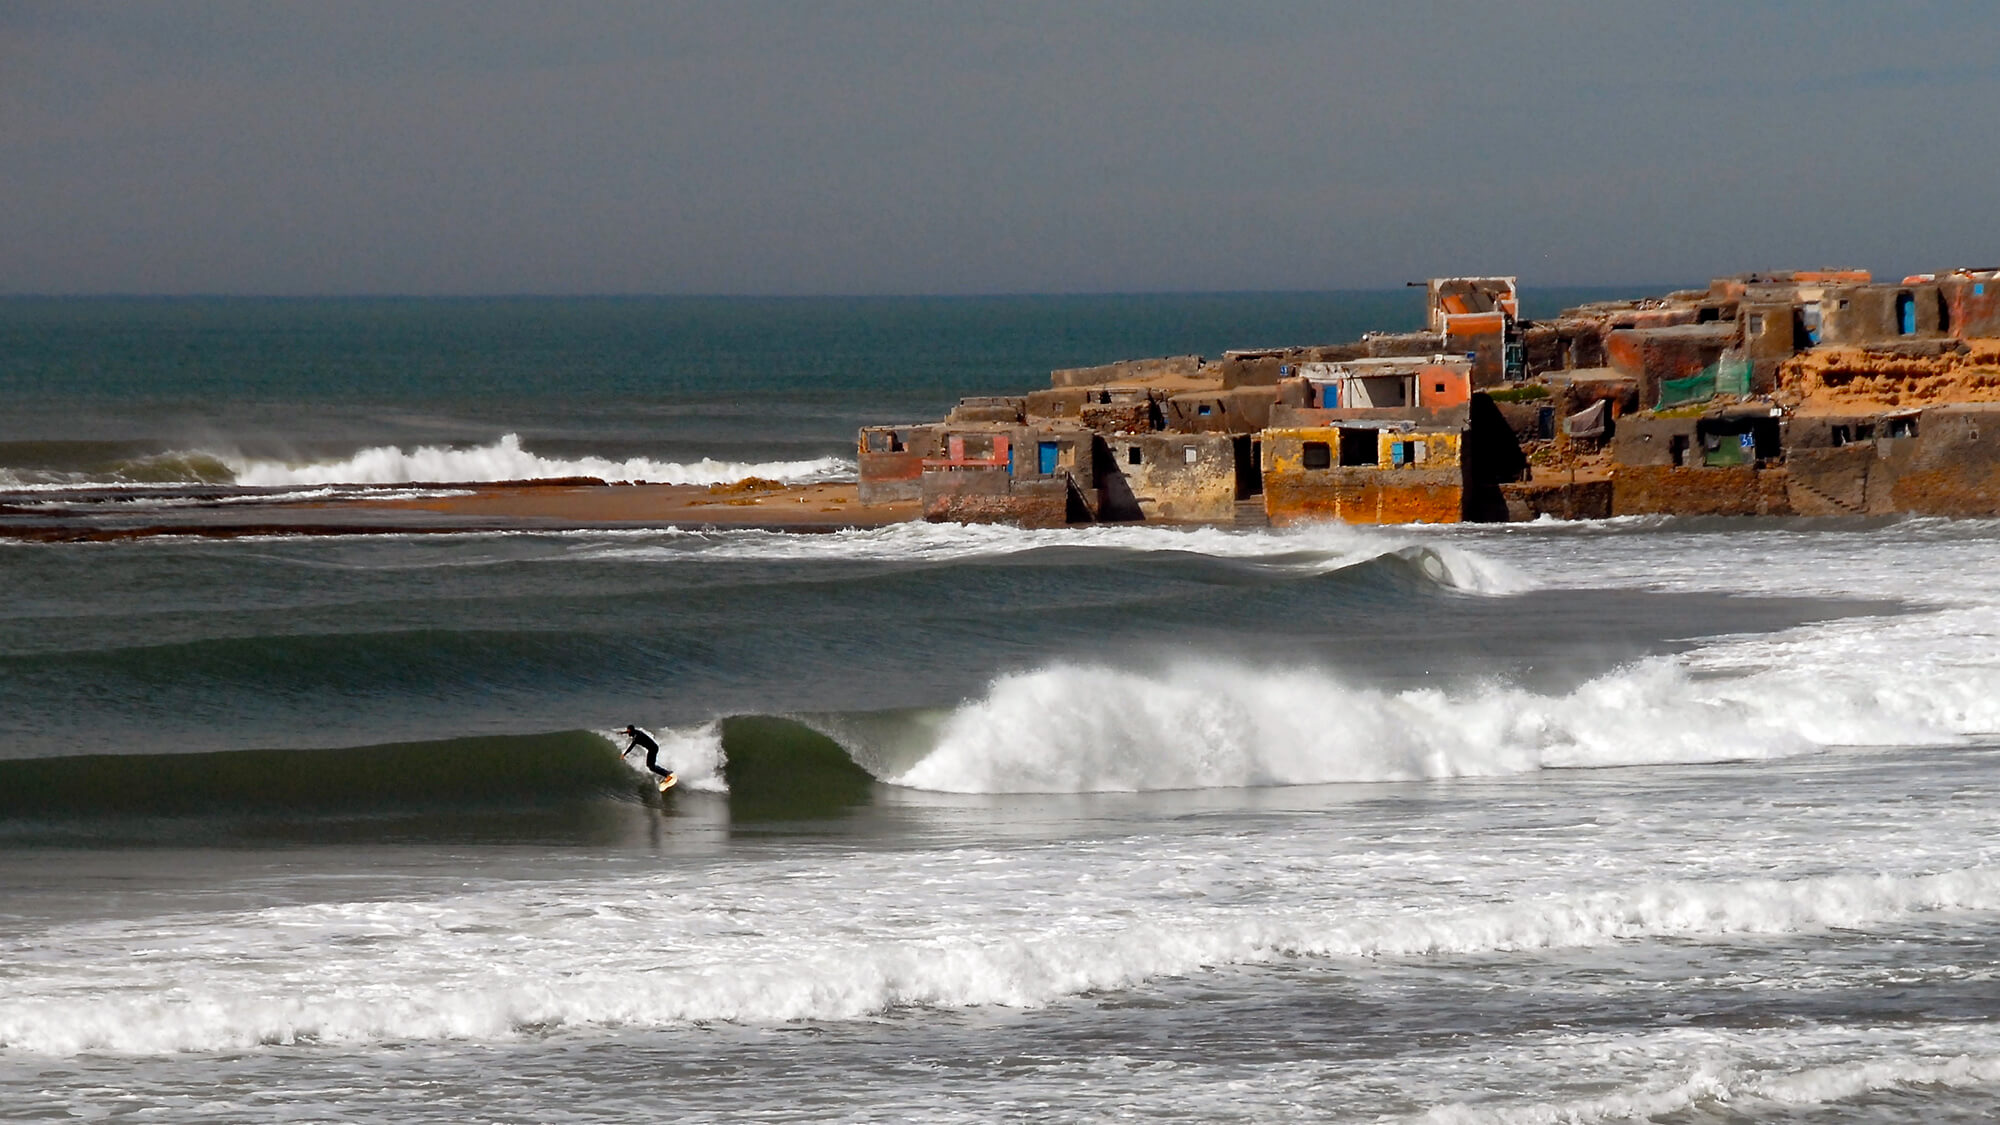 Sahara Desert Tour - Surfing Experience in Morocco - The Ultimate Guide Agadir